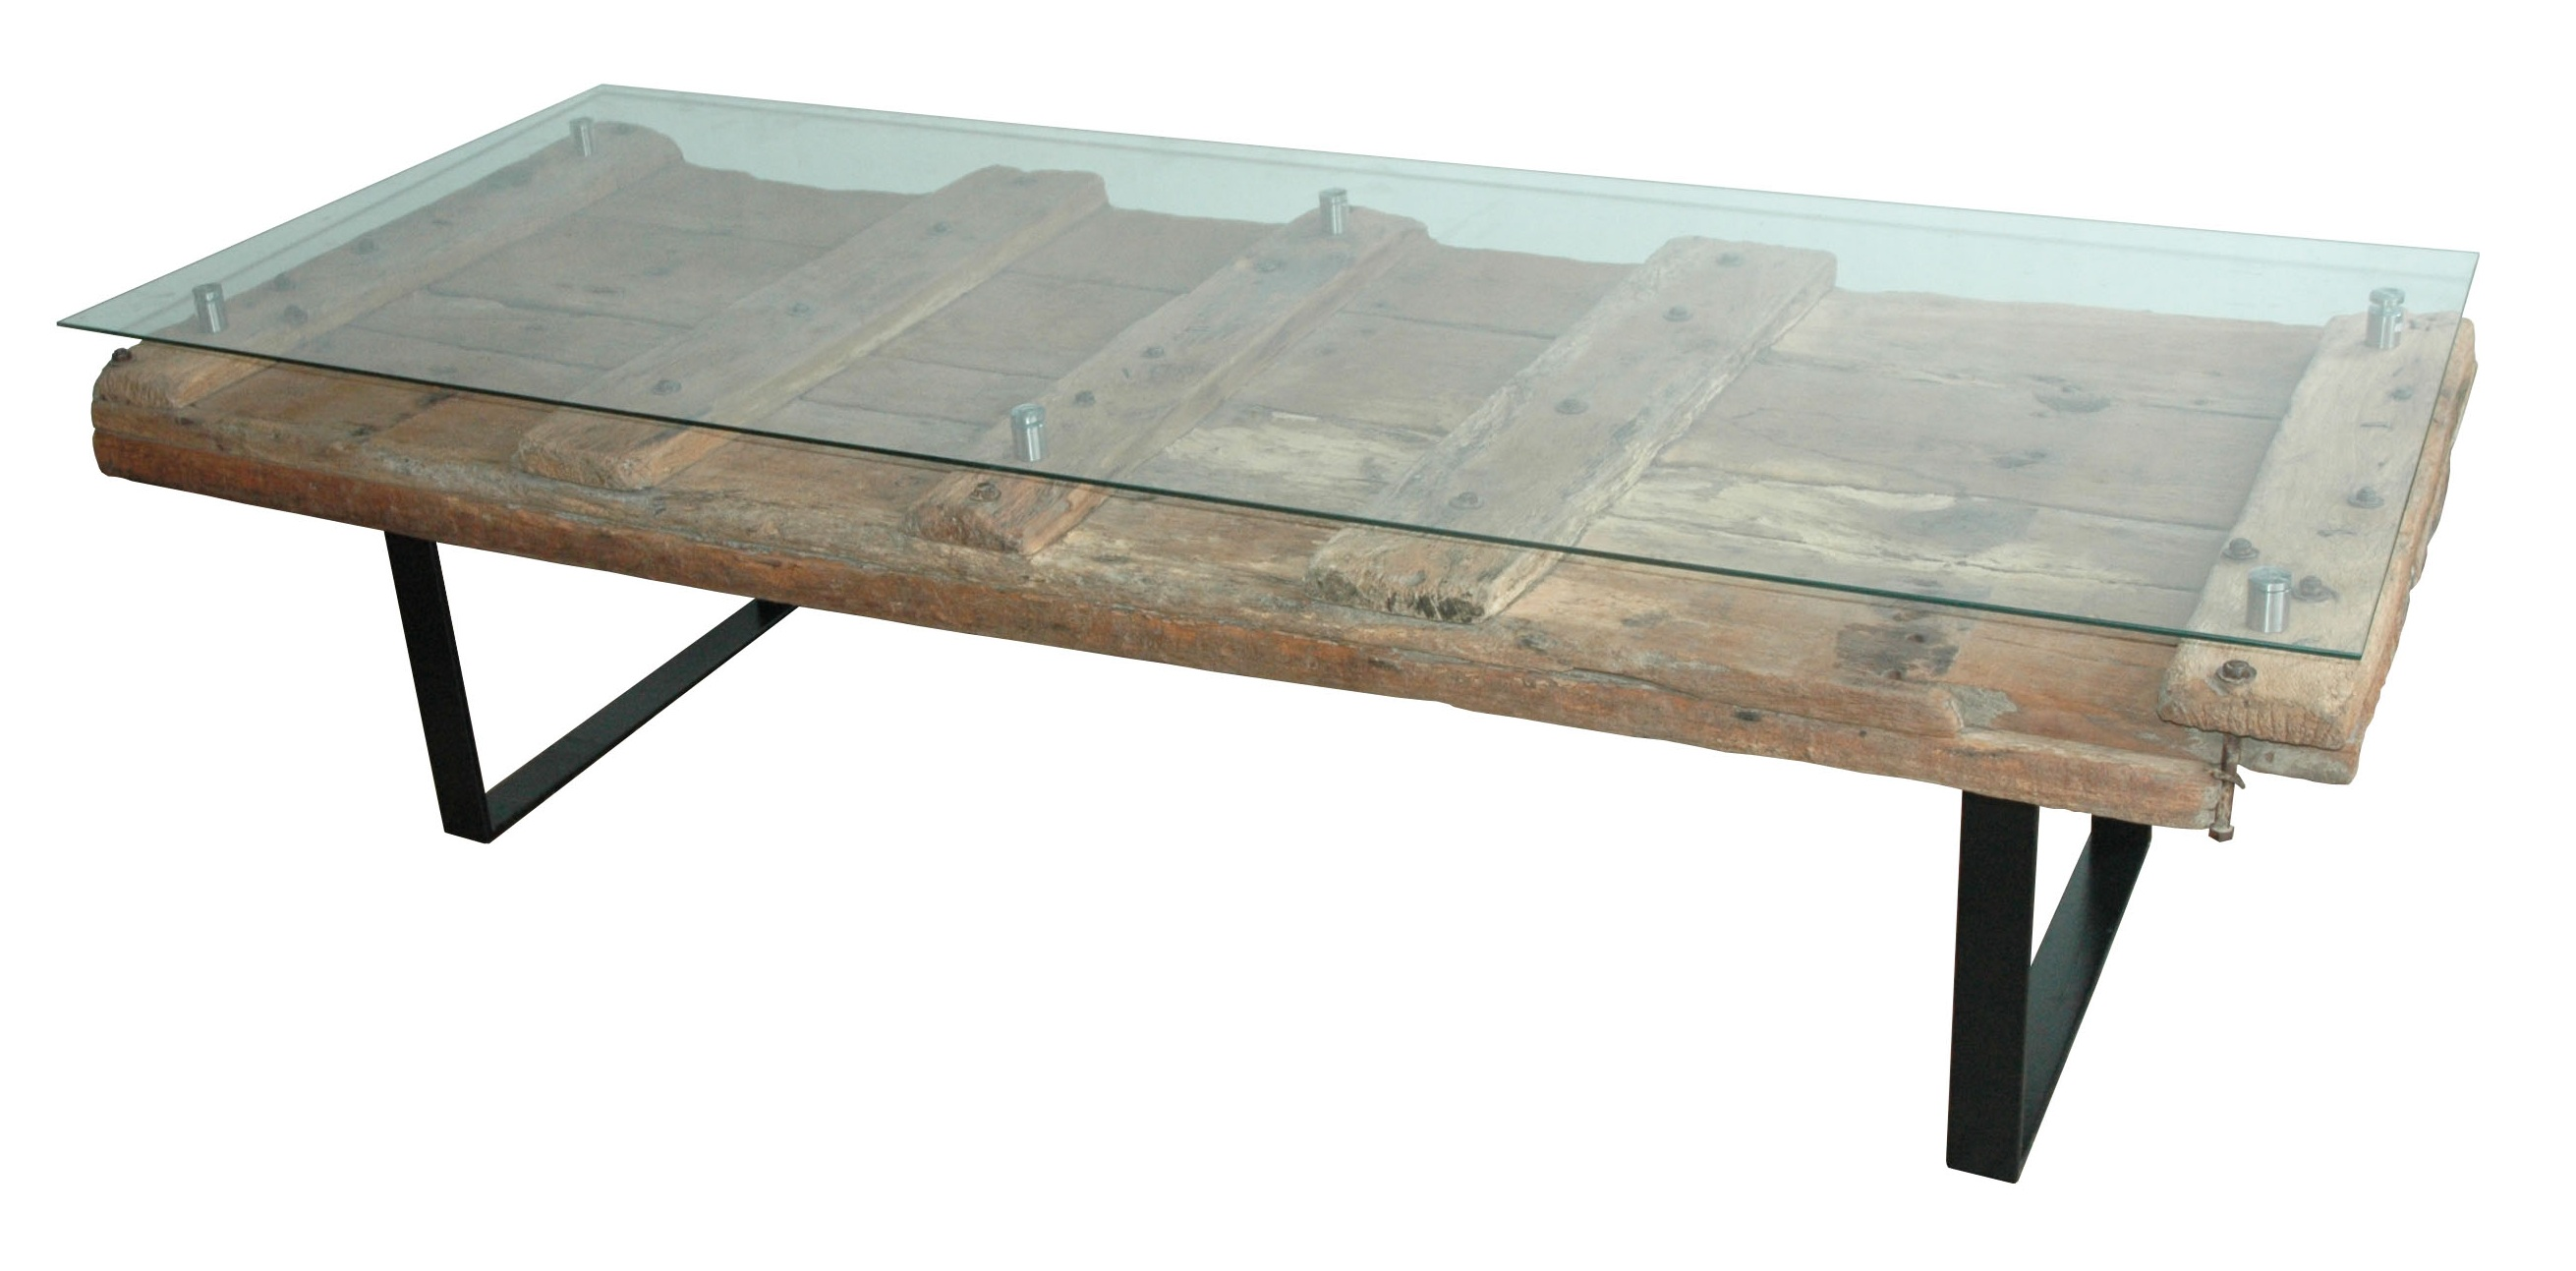 The Samurai Coffee Table Bamboo Furniture Grassracks Bamboo